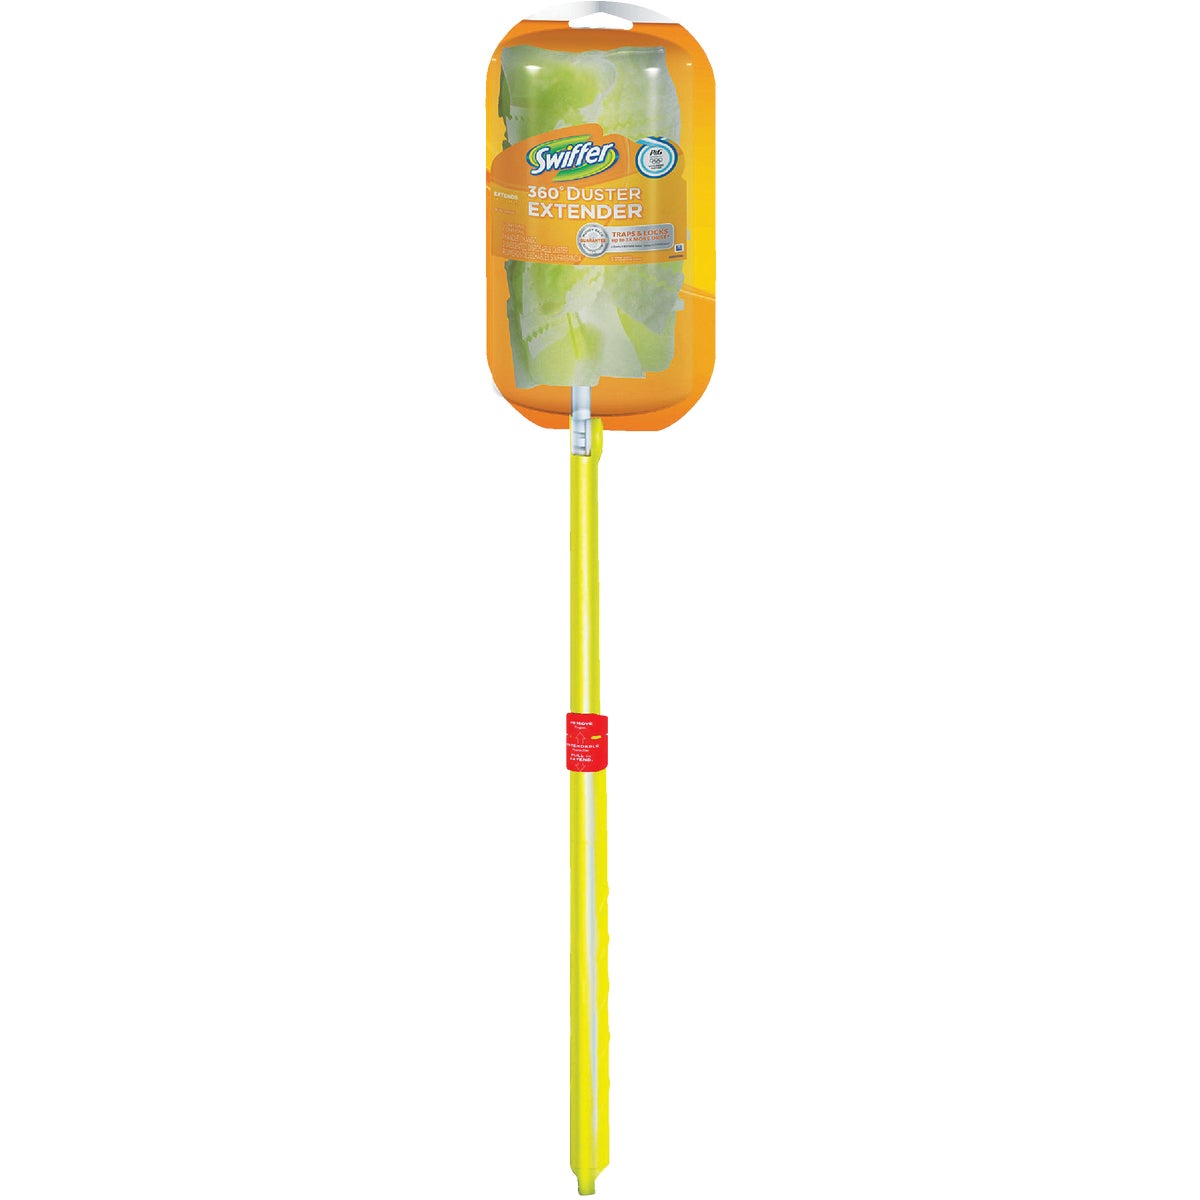 ASSEMBLED SWIFFER DUSTER - 80900 by Procter & Gamble